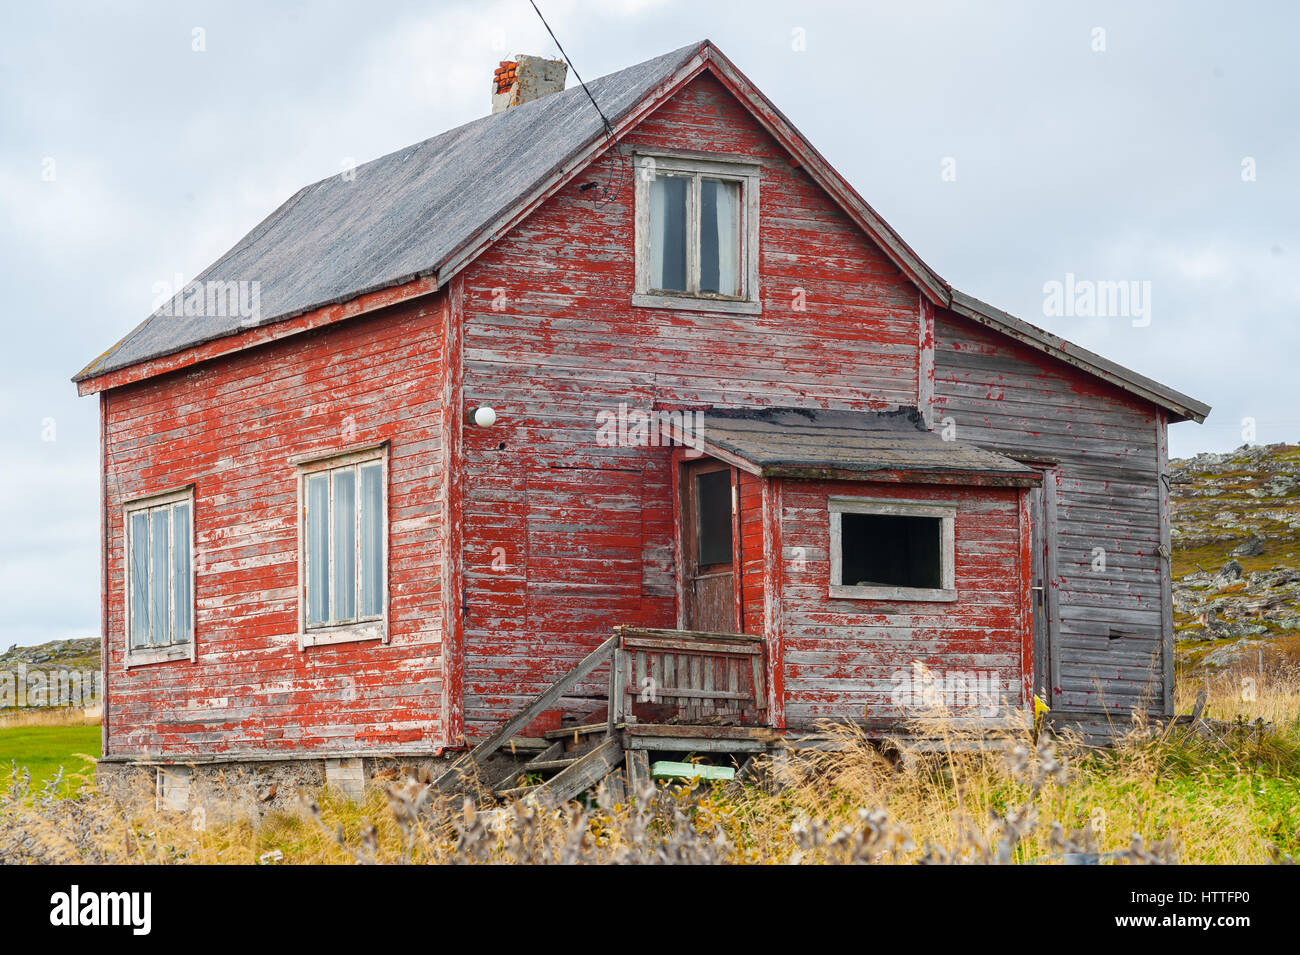 weathered old wooden country house in need of repair stock photo